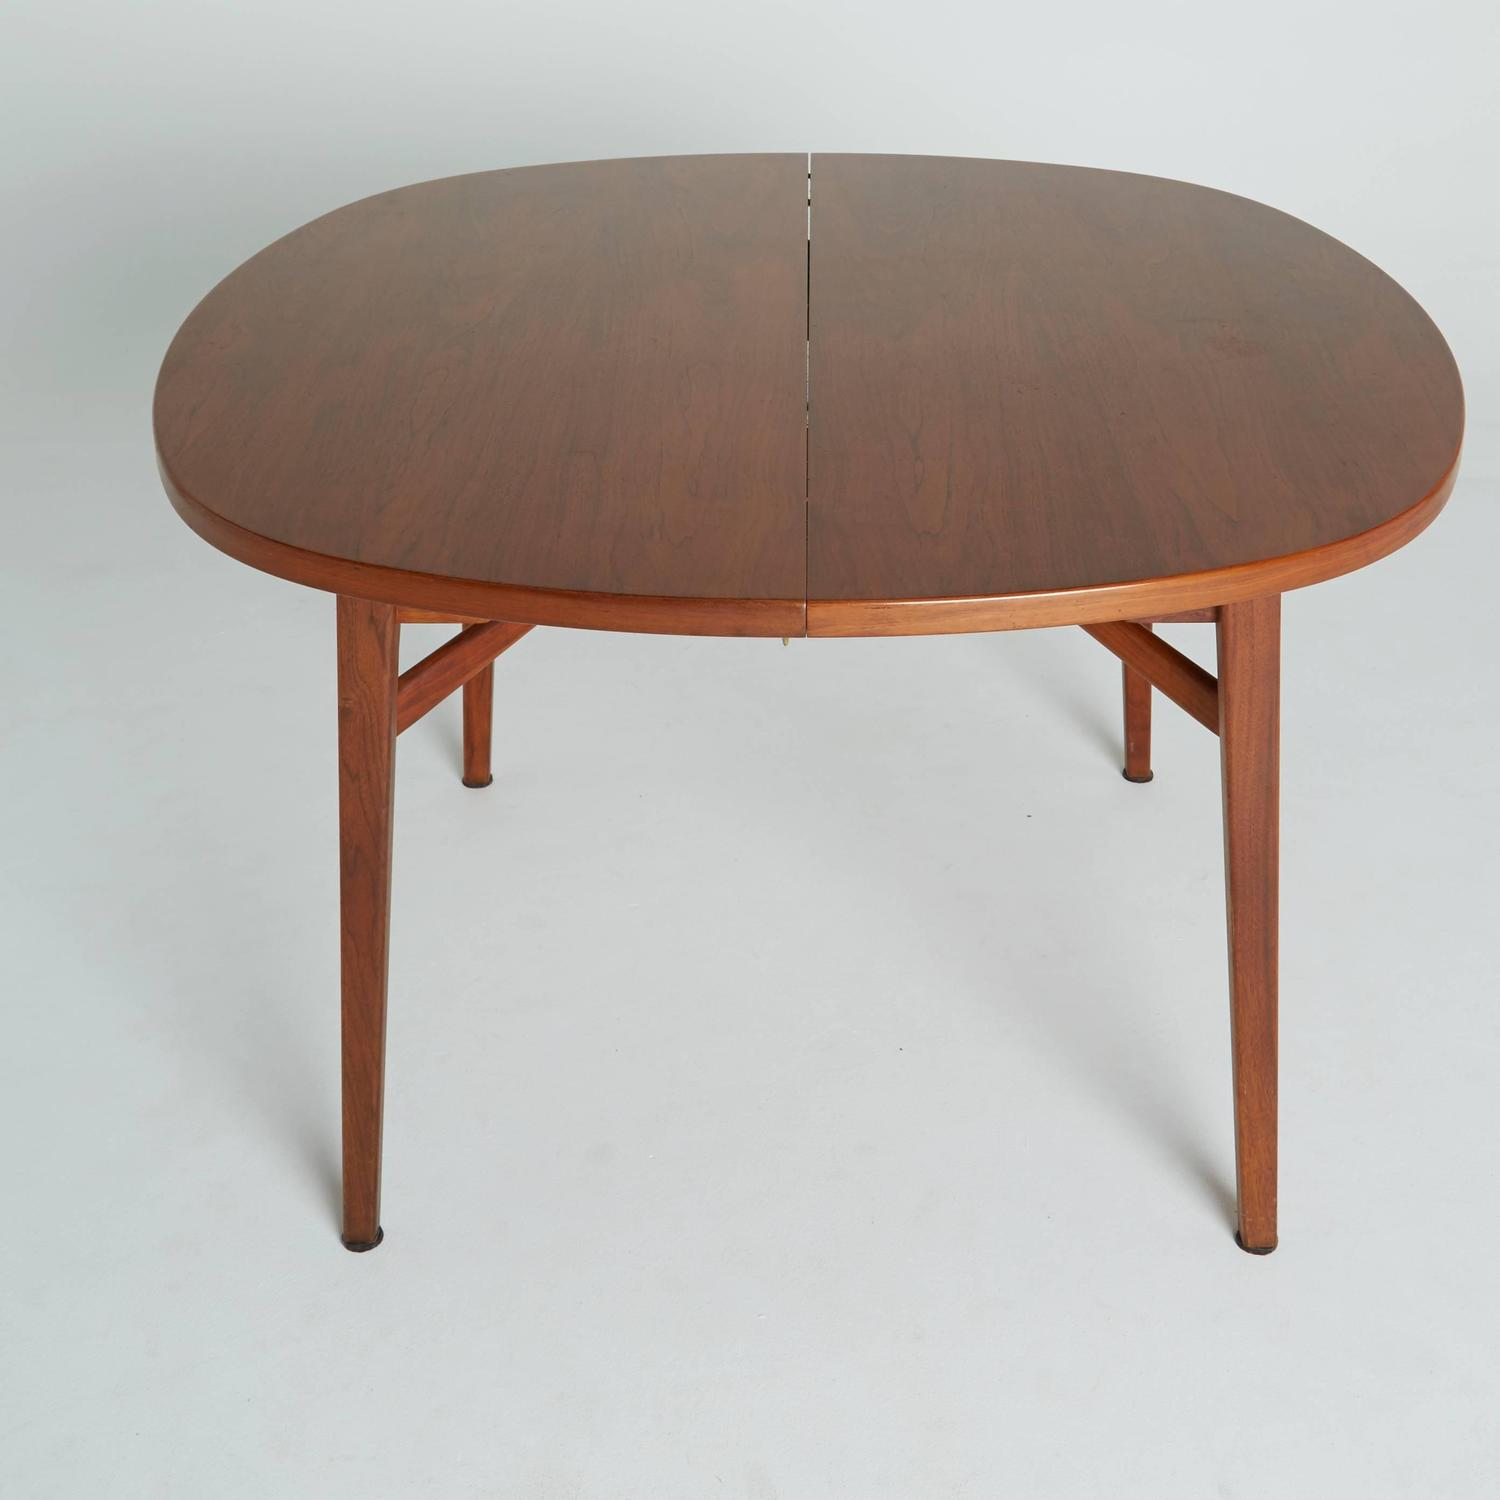 Jens risom teak expandable dining table for sale at 1stdibs for Expandable dining table